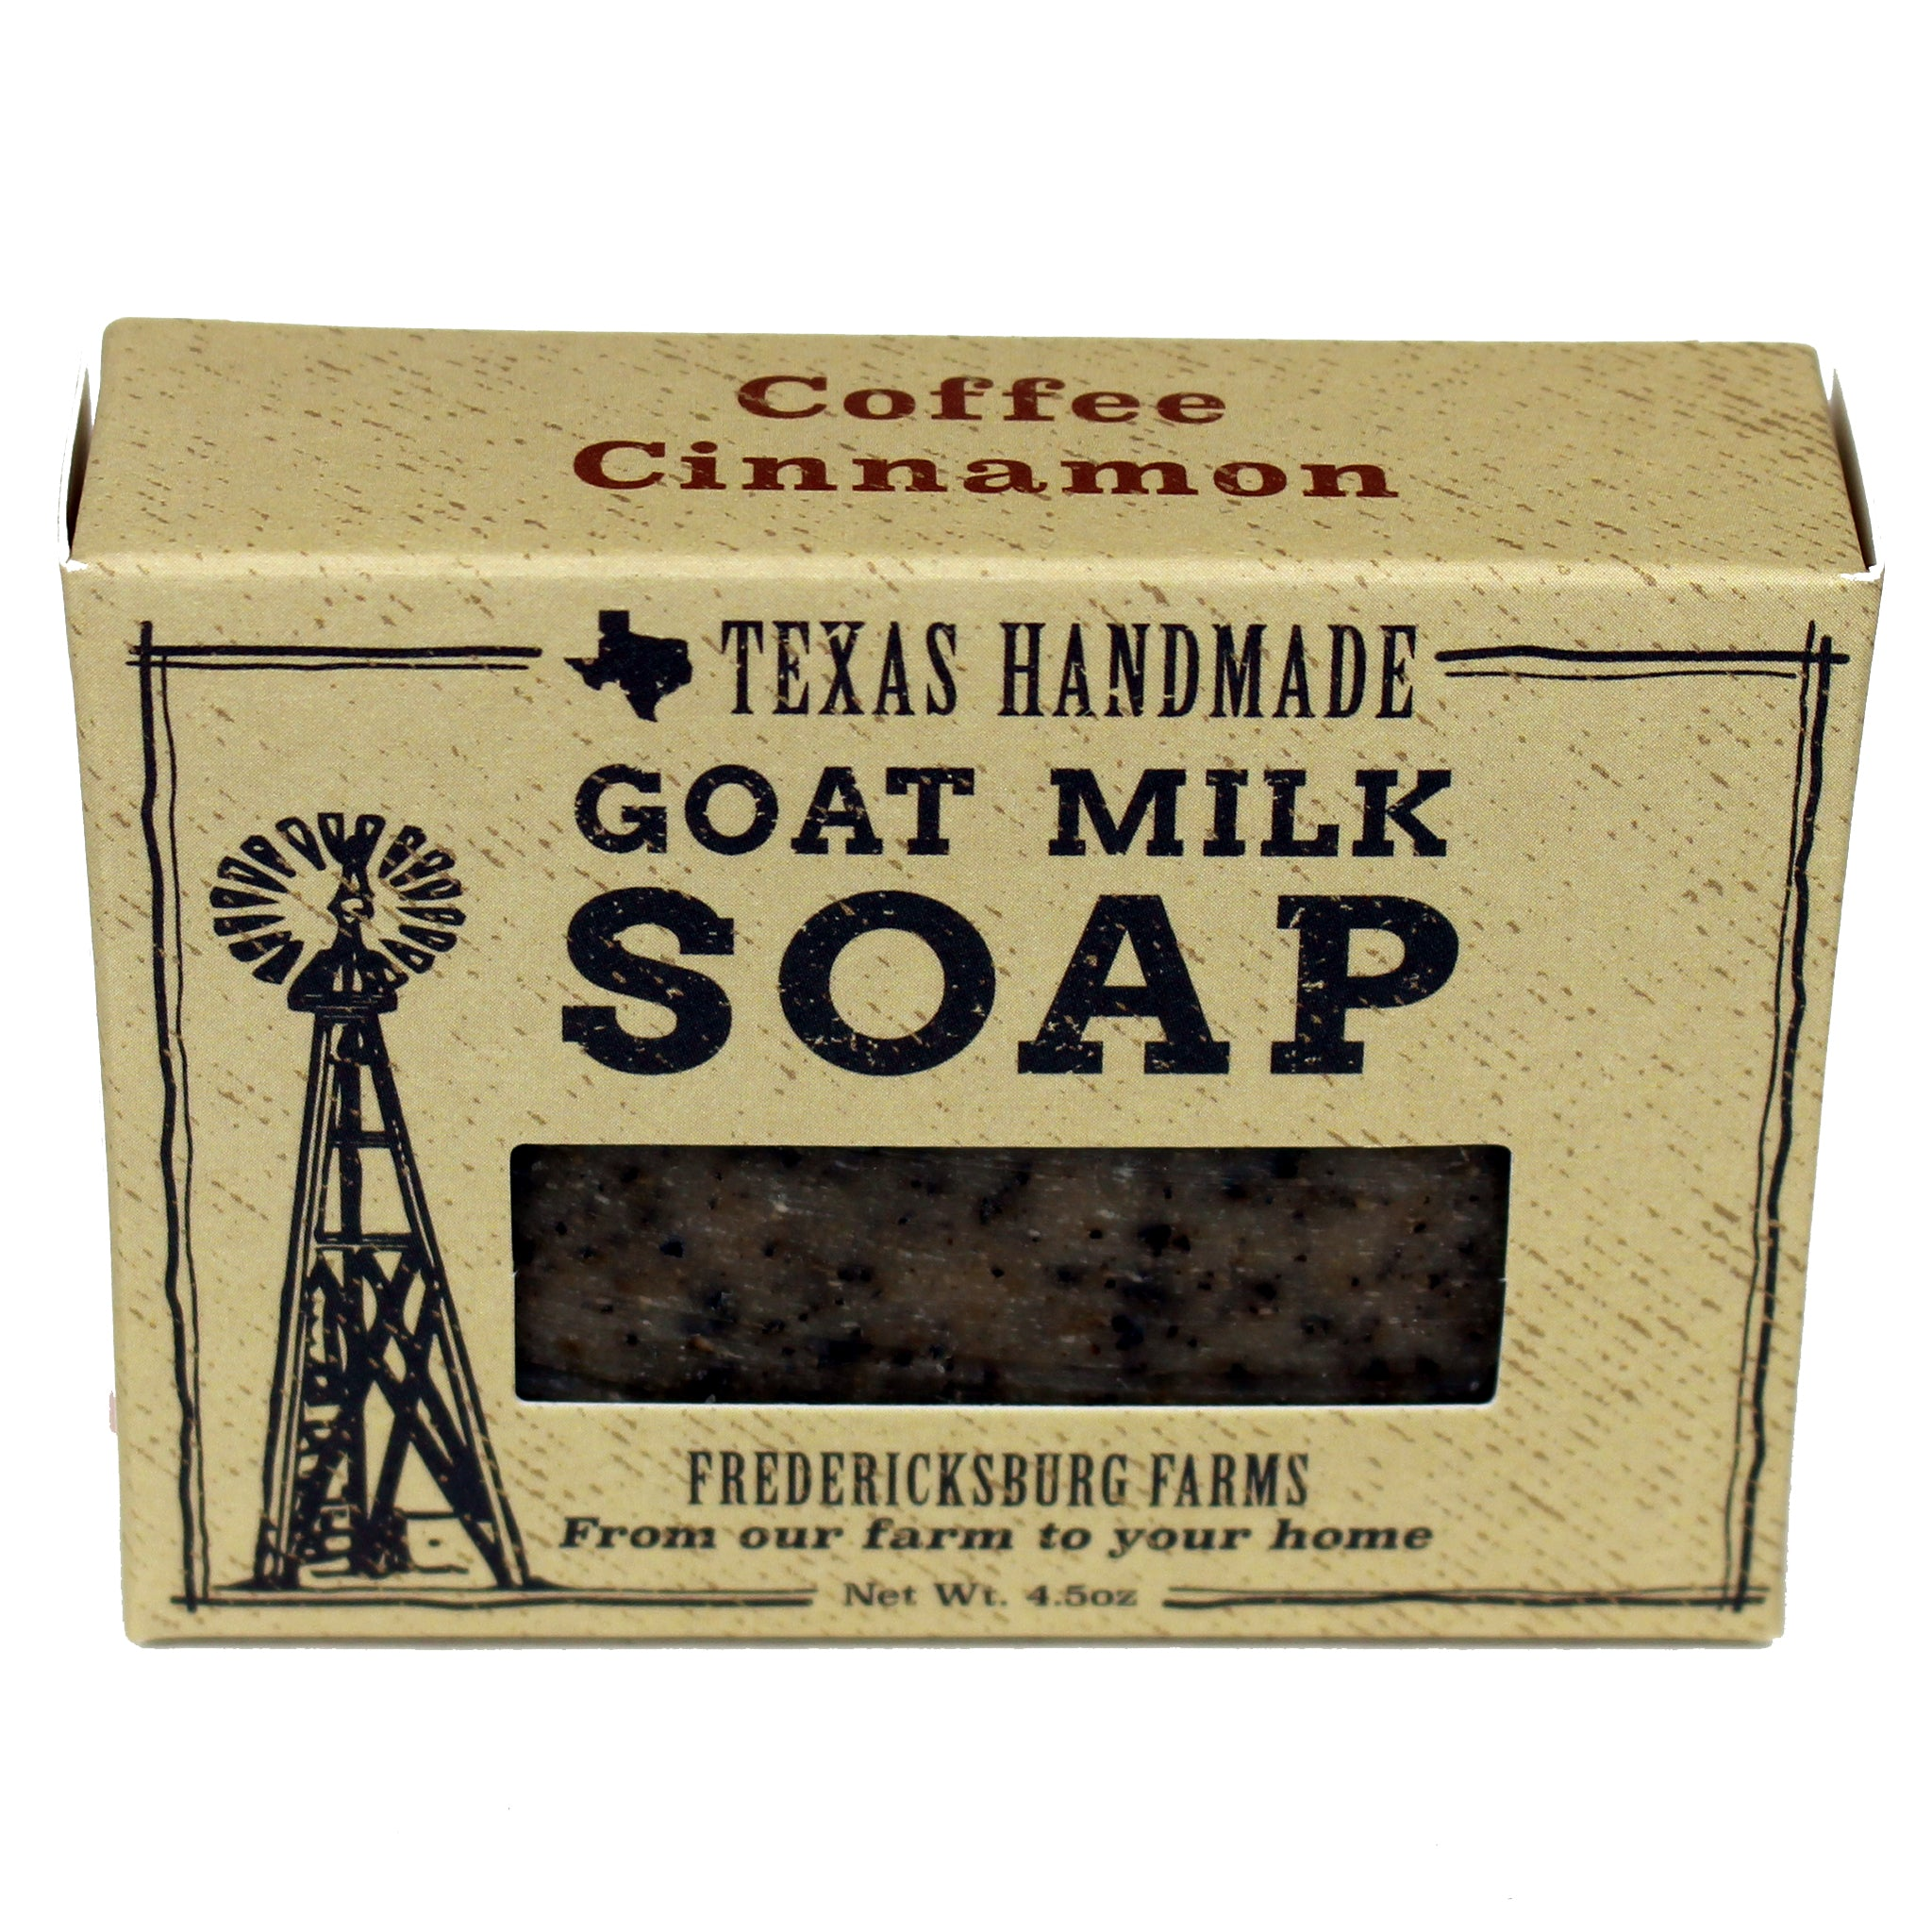 Coffee Cinnamon Goat Milk Soap - Fredericksburg Farms